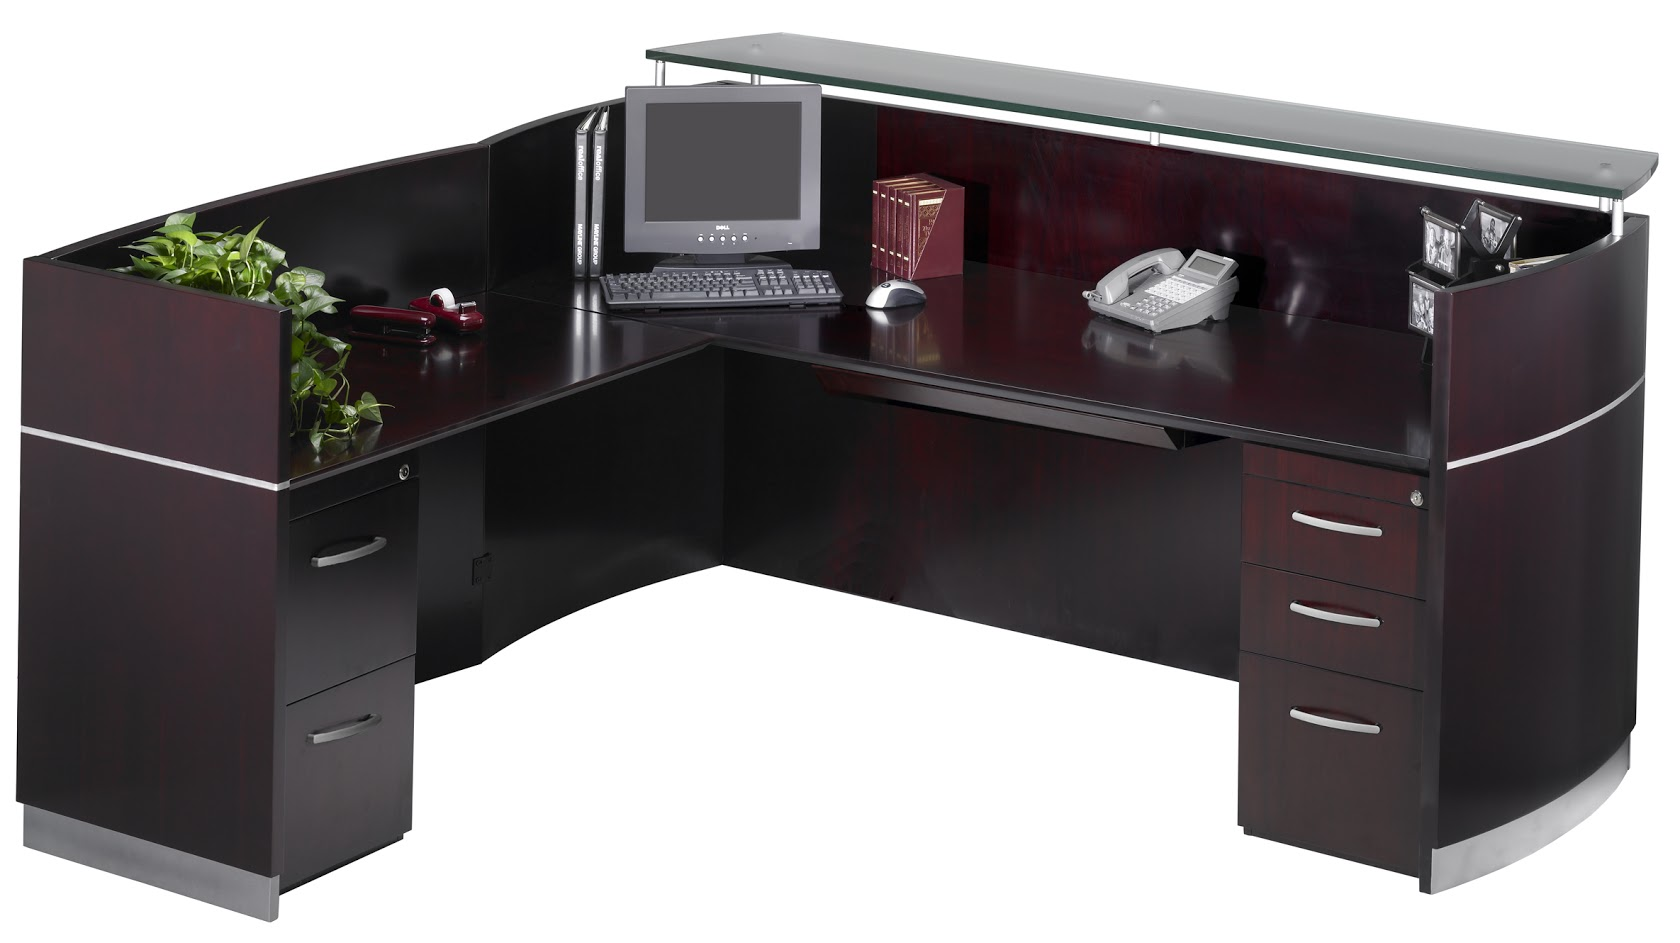 Napoli L Shape Wood Veneer Reception Station With Glass